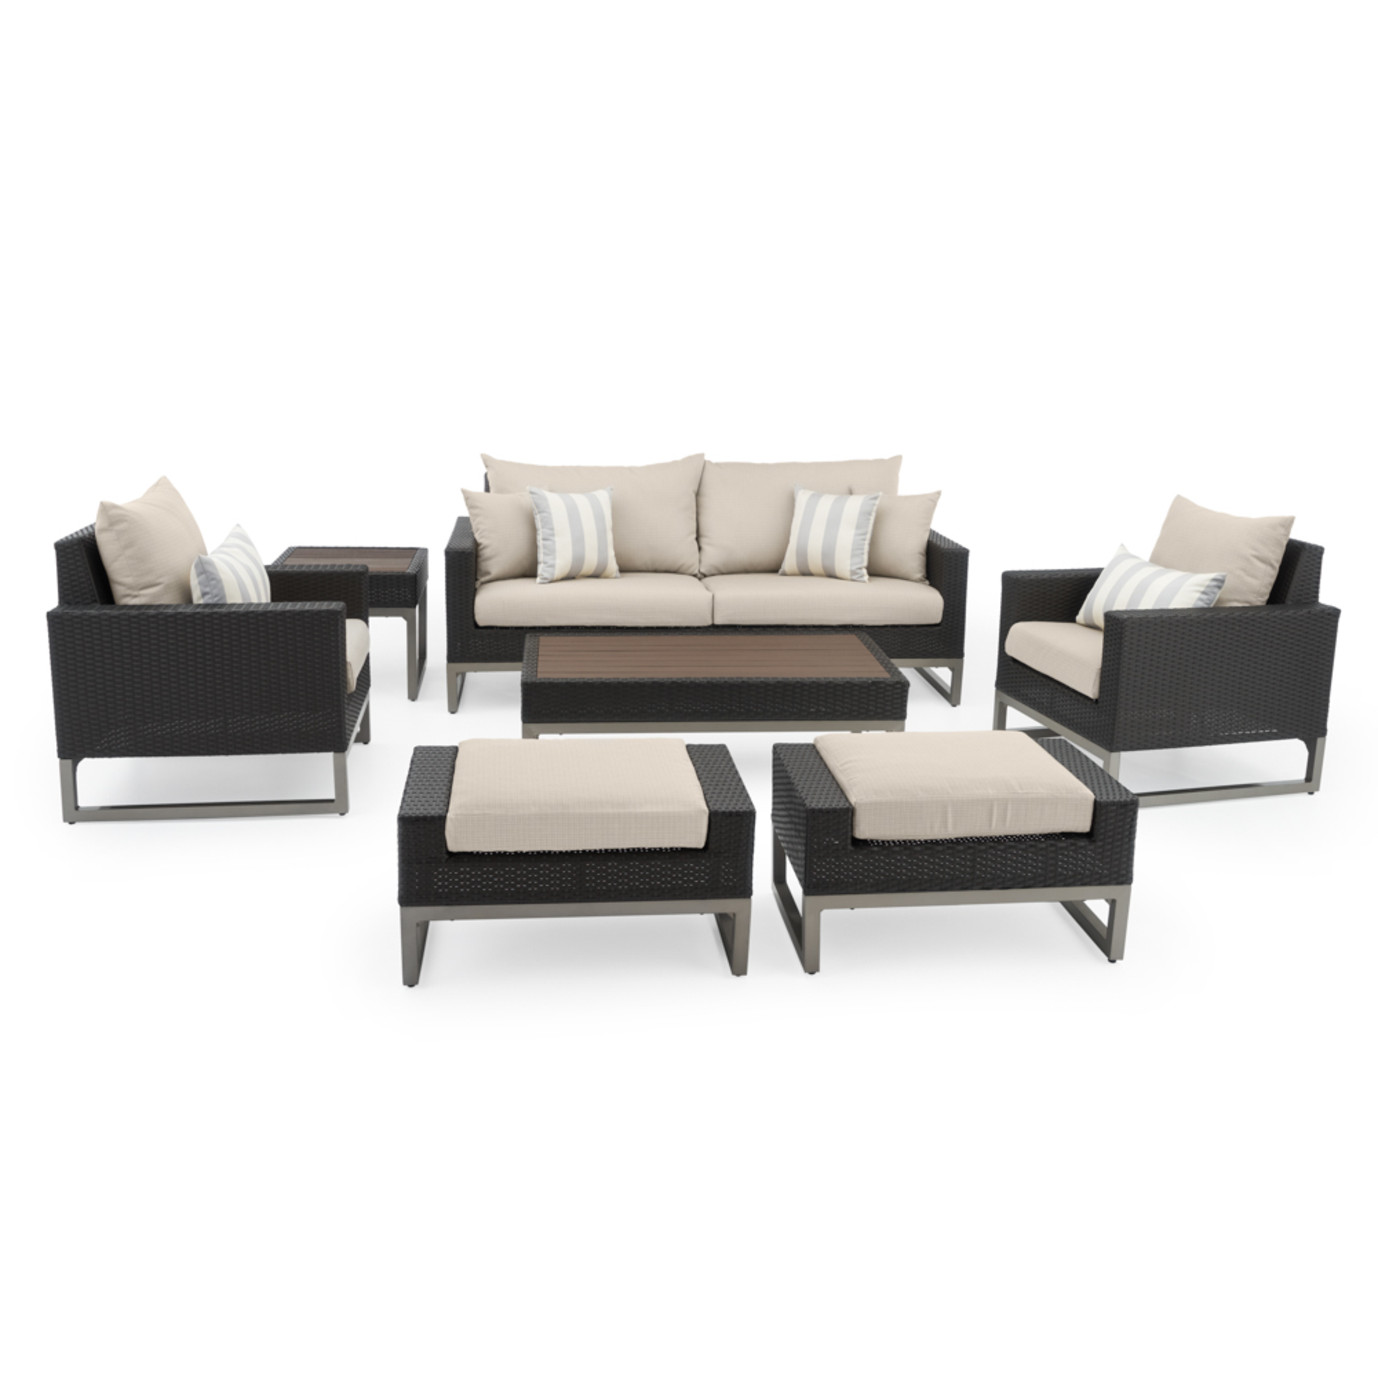 Milo™ Espresso 7pc Deep Seating Set -Slate Gray